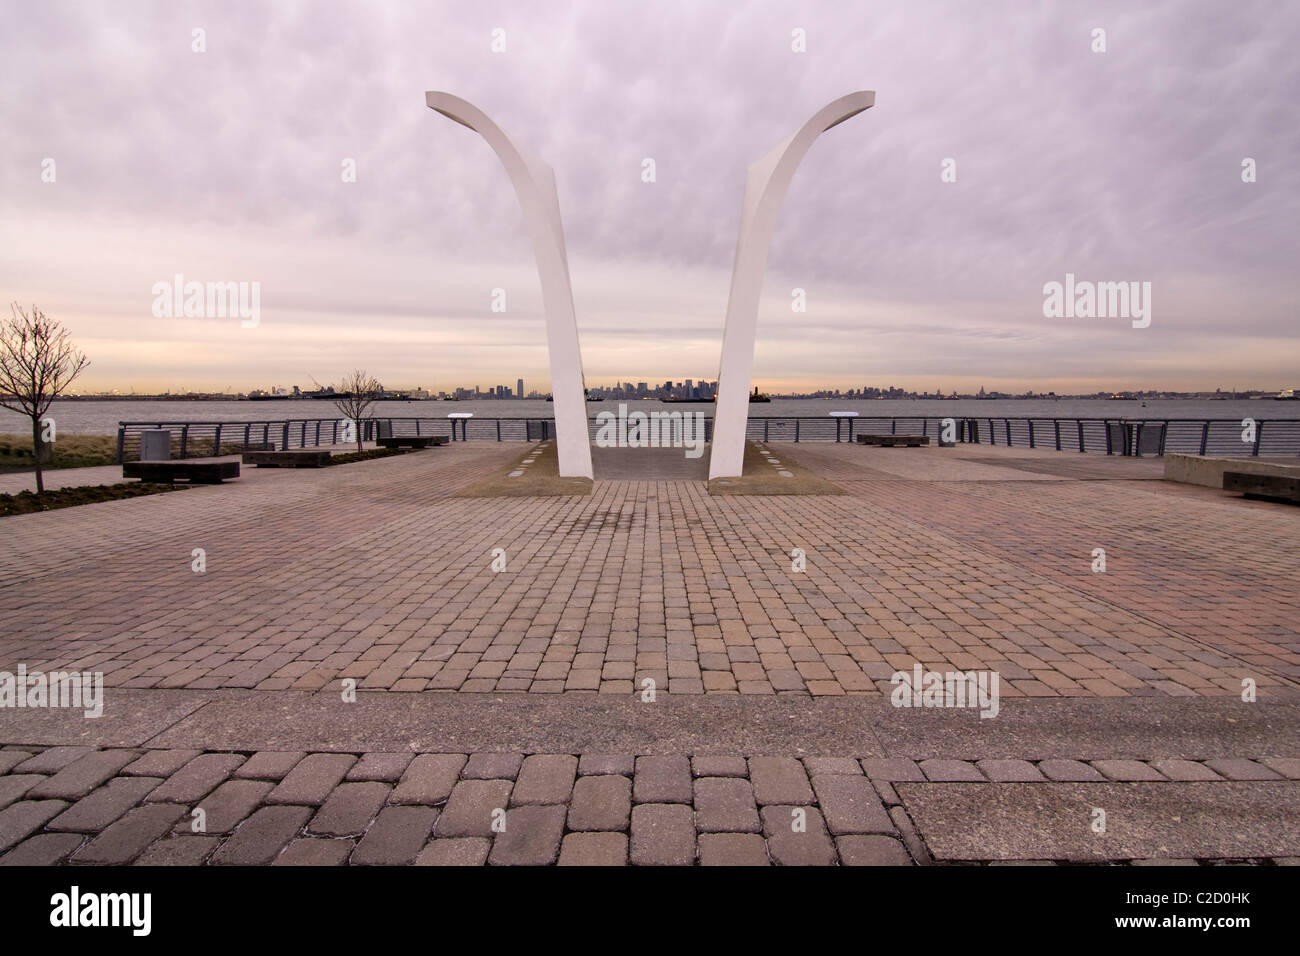 Sept 11th Memorial called 'Postcards' on Staten Island in New York City looking East towards the World Trade - Stock Image